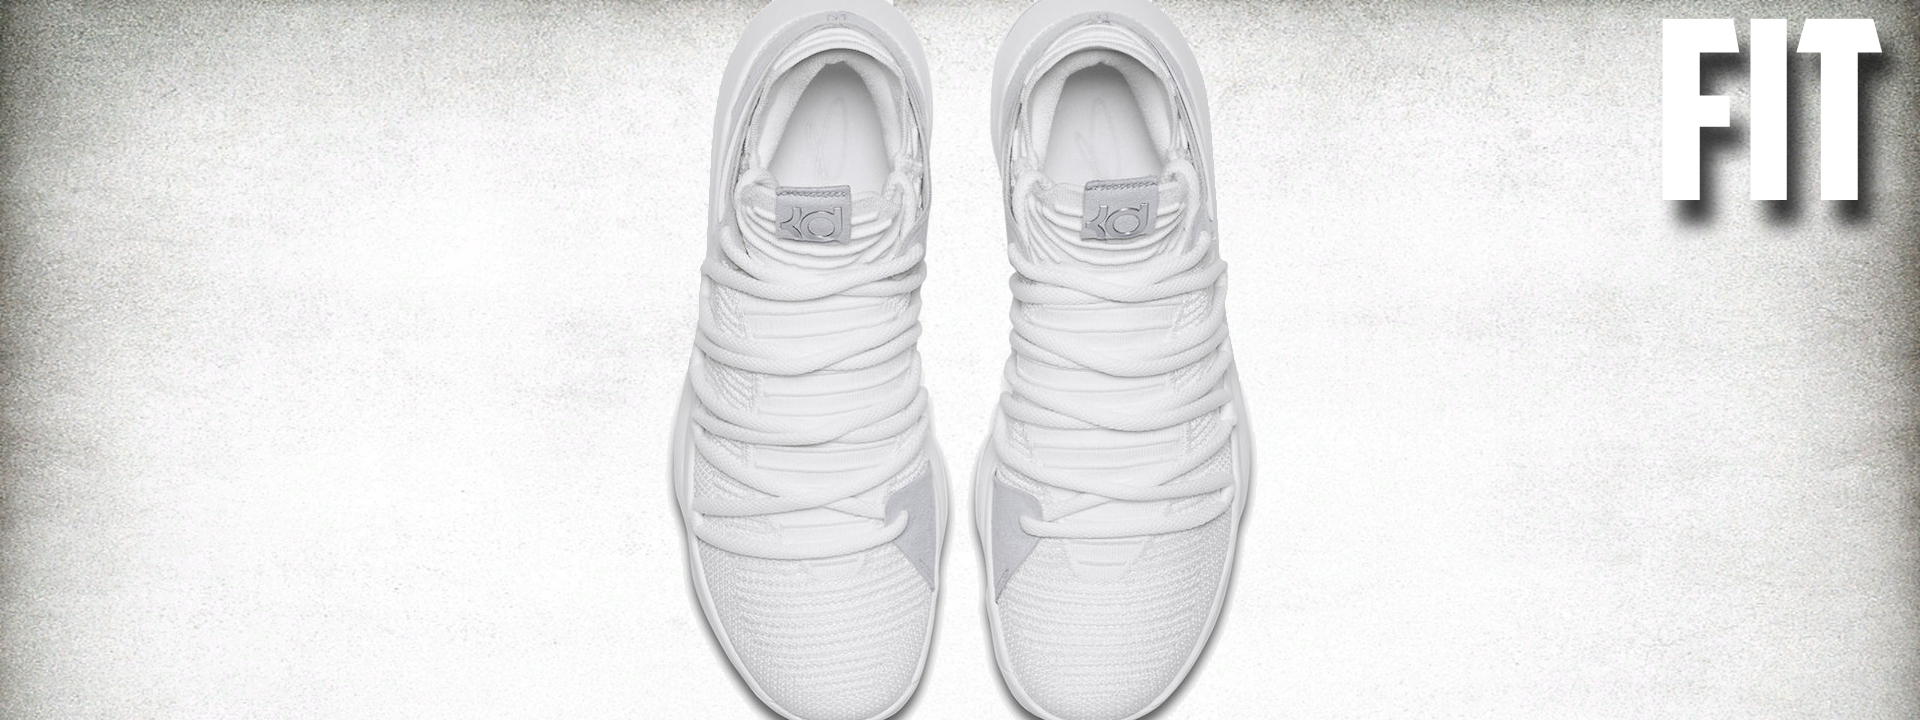 Nike KD 10 Performance Review fit